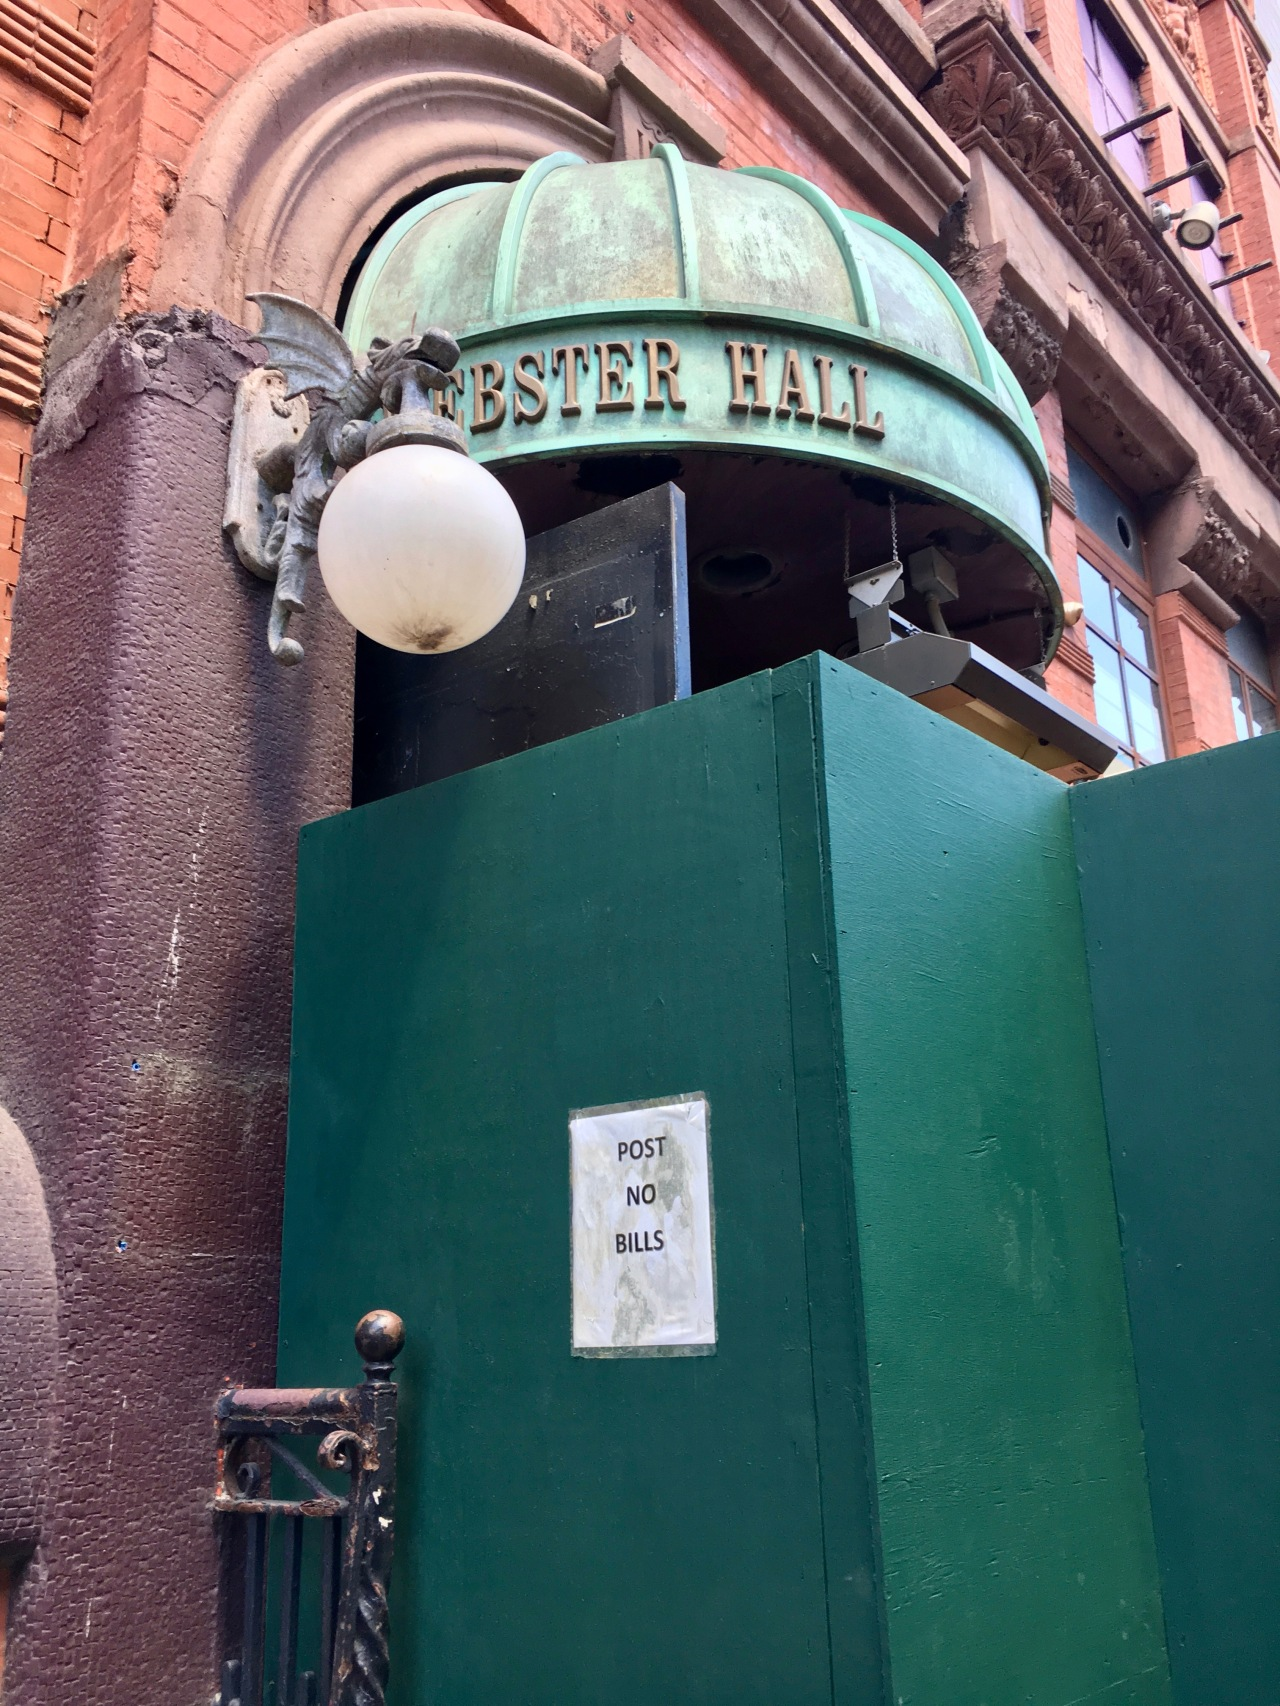 Webster Hall Previously The Ritz where U2 played their first US gig in 1980 June 2018.jpg